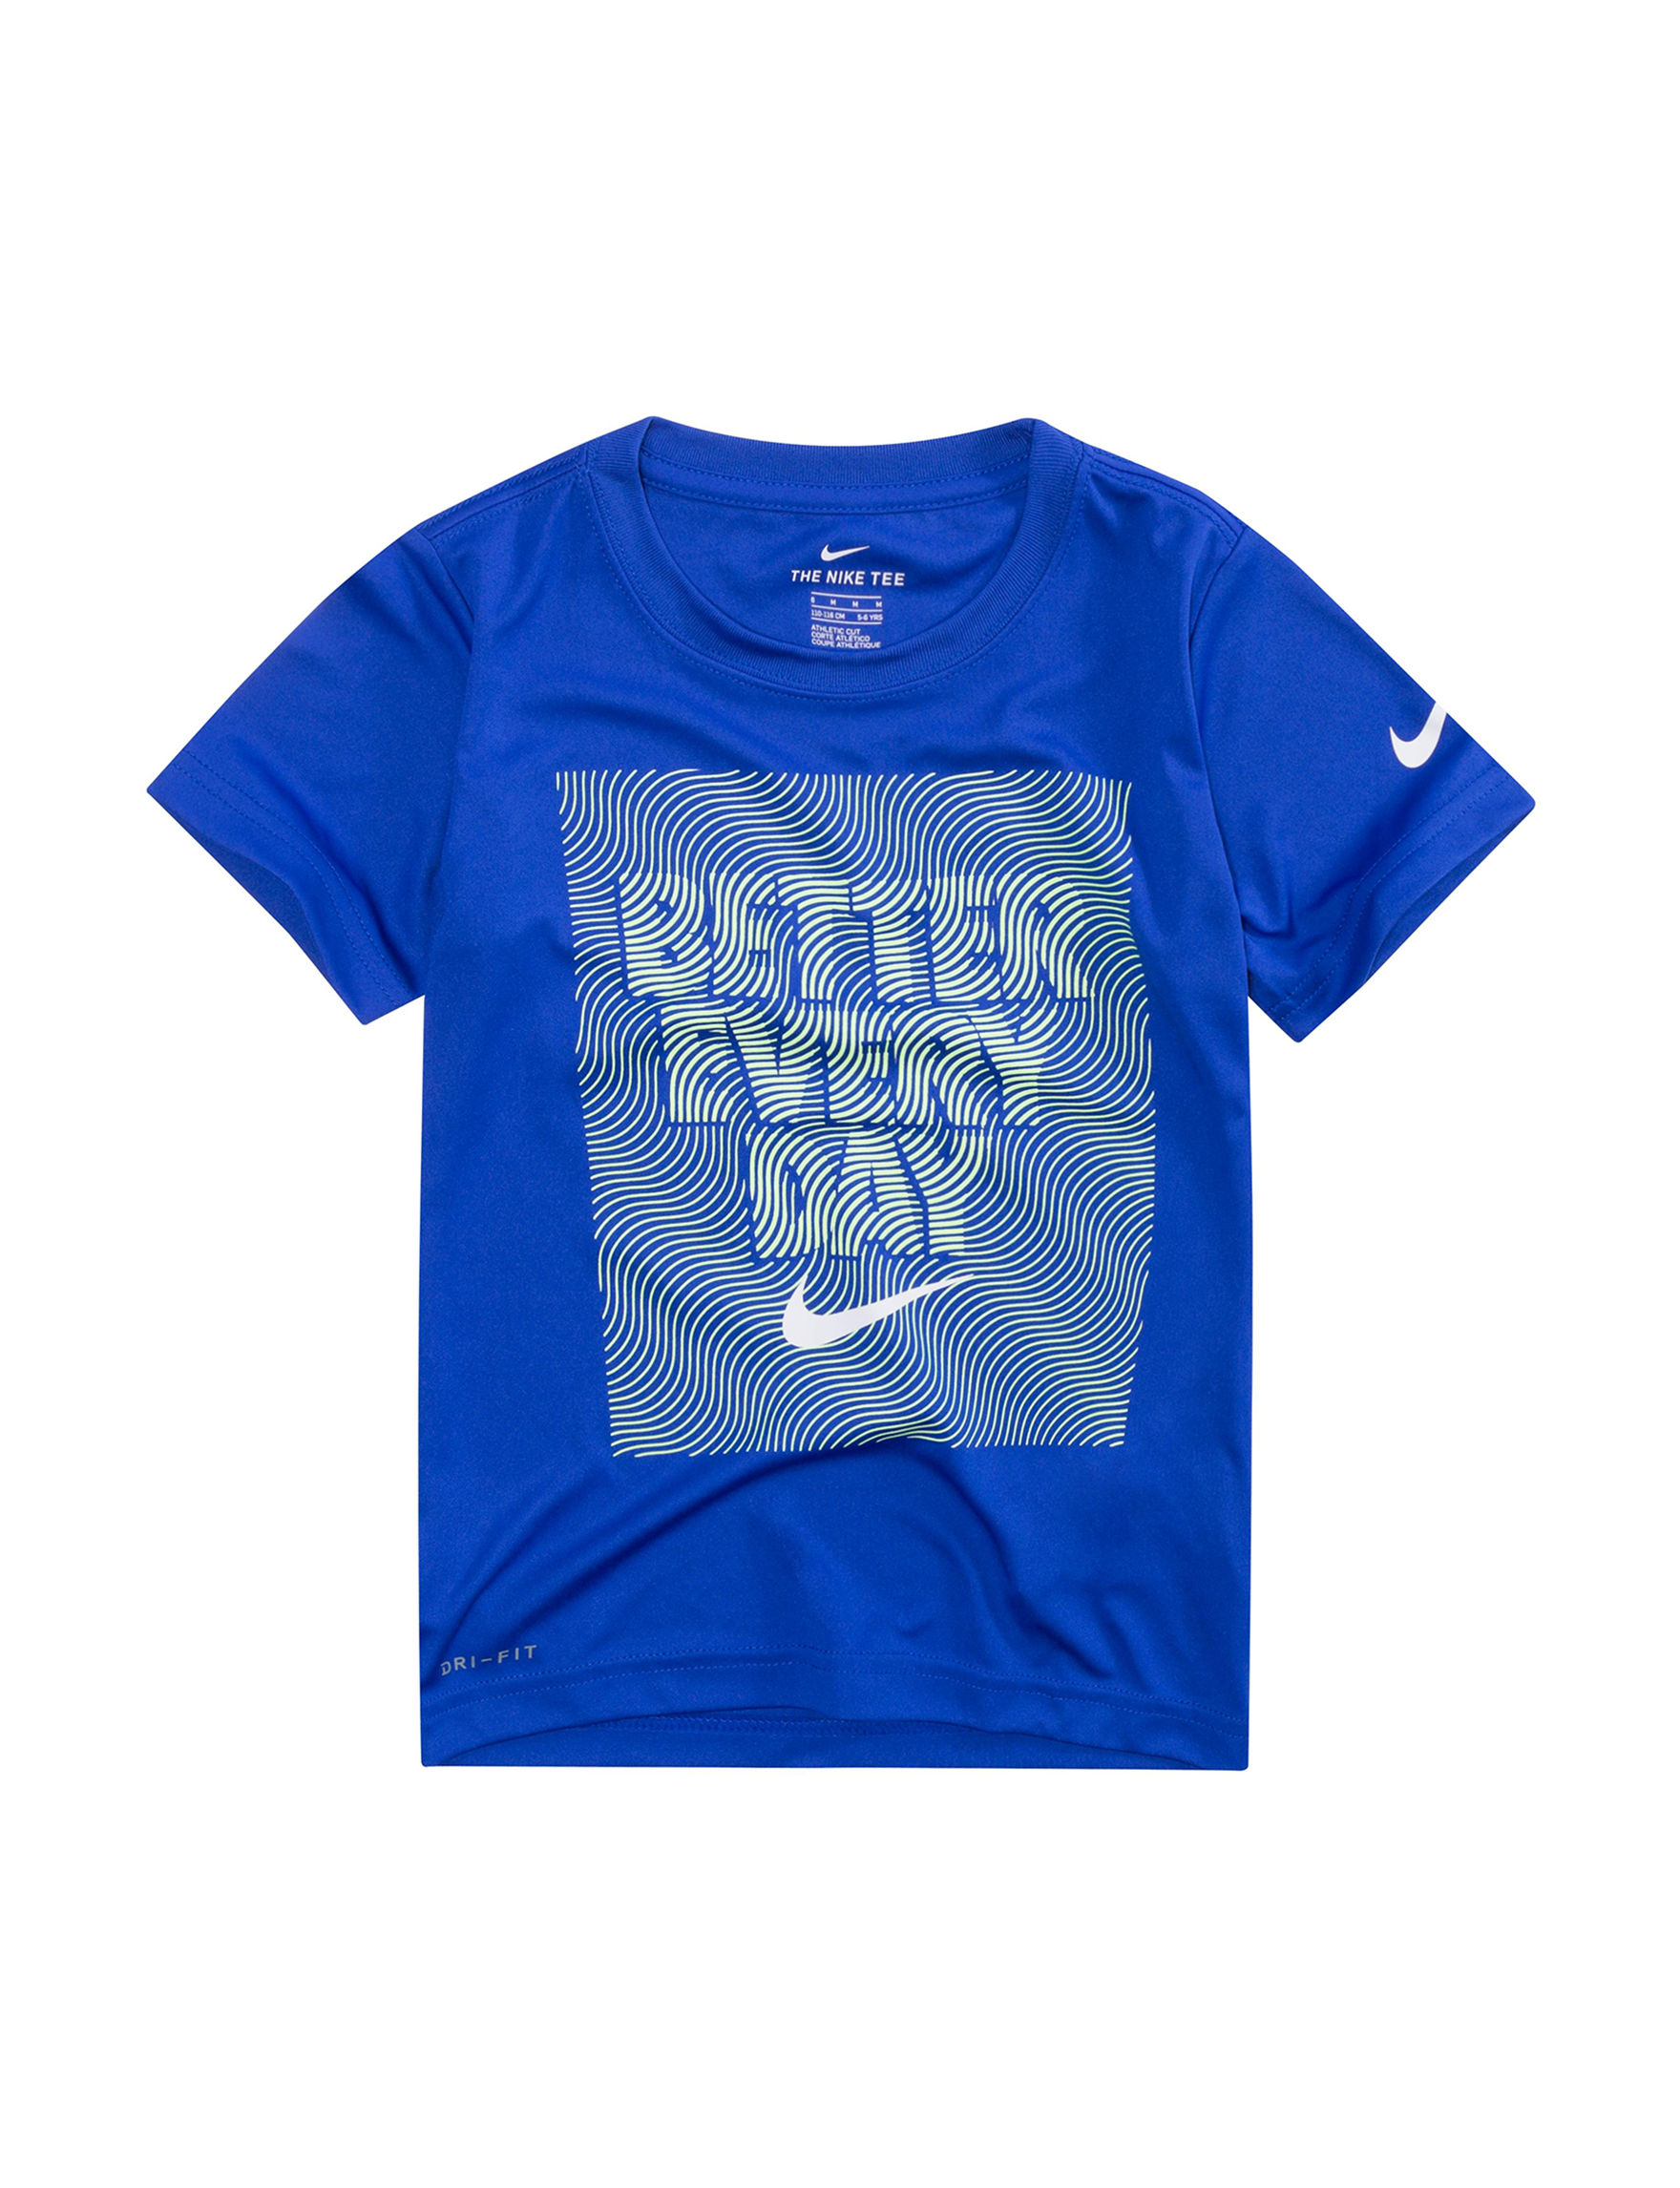 Nike Royal Blue Tees & Tanks